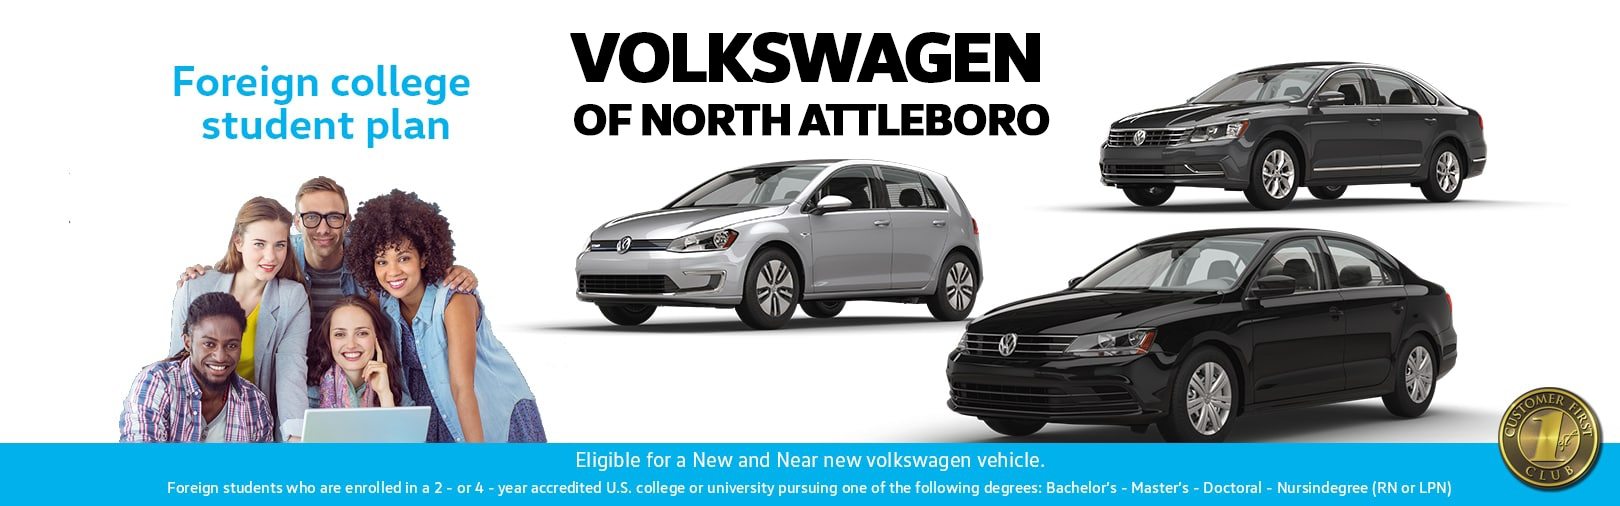 boston used volkswagen northshore nyc for dealers dealer prime ma chelsea car cars in sale inc